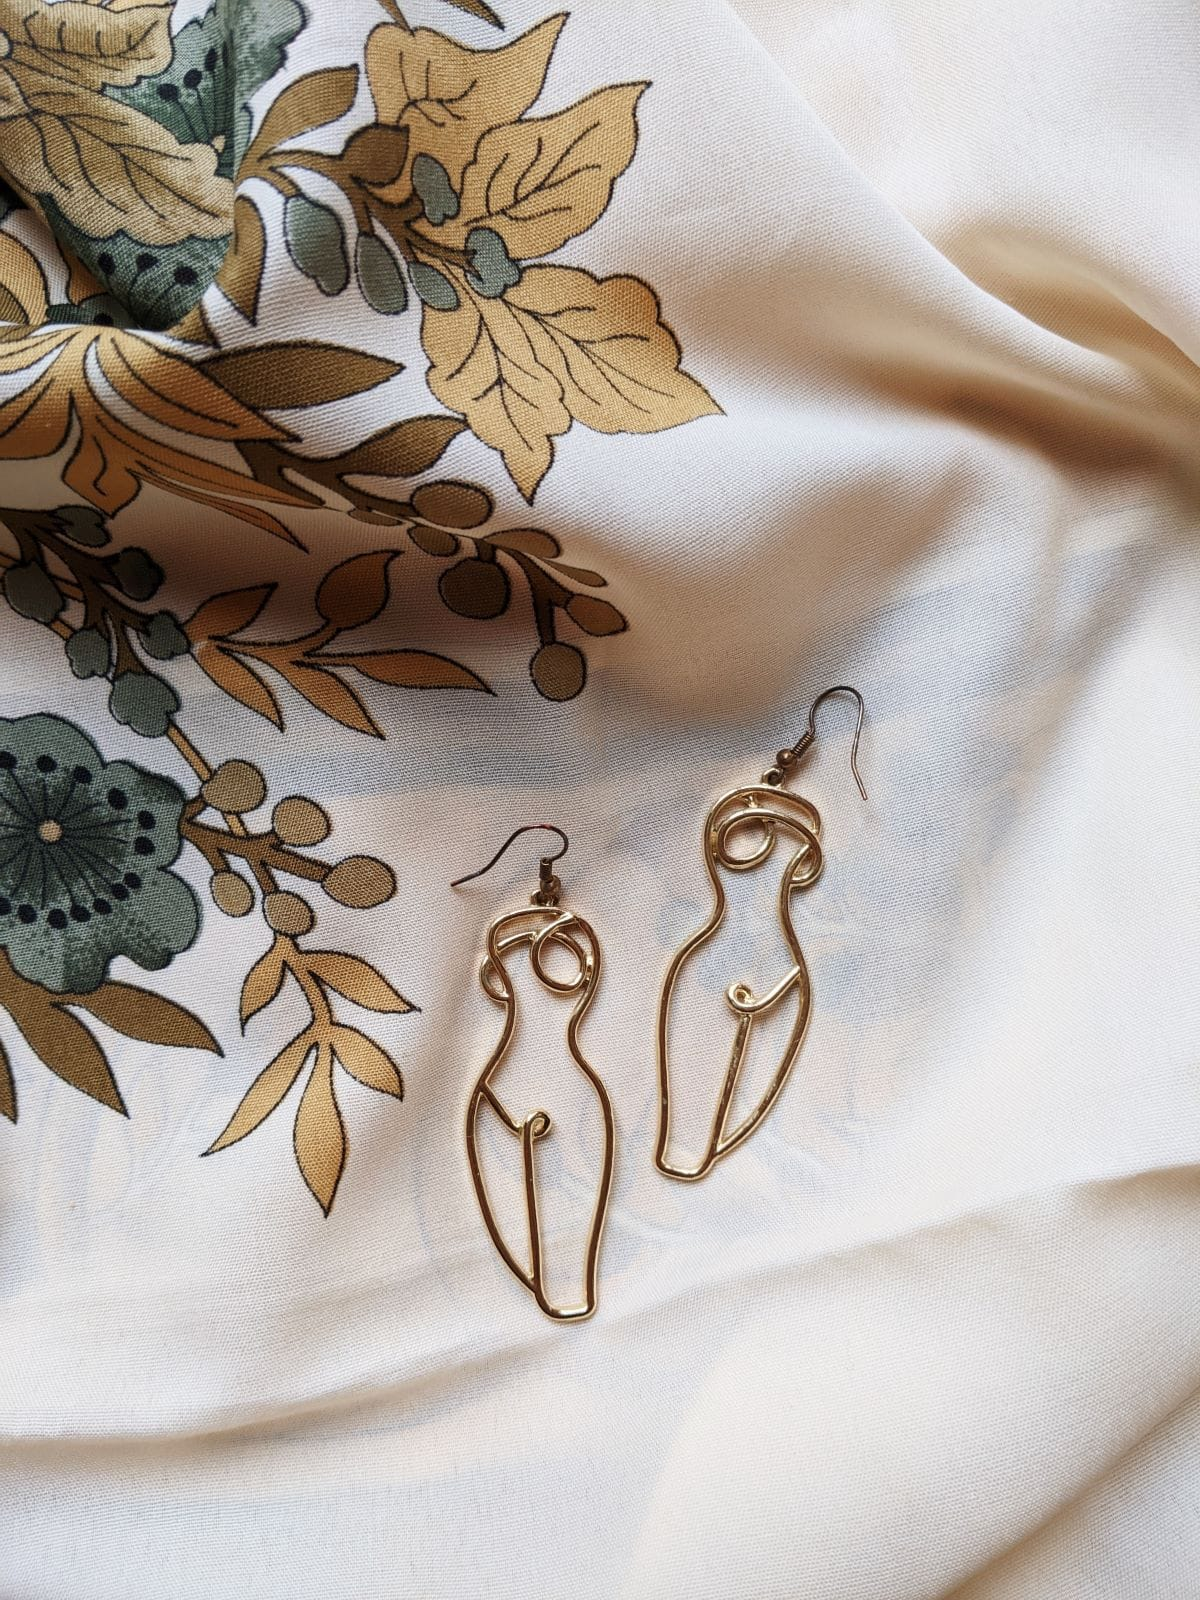 A pair of gold earrings outlining a nude female body